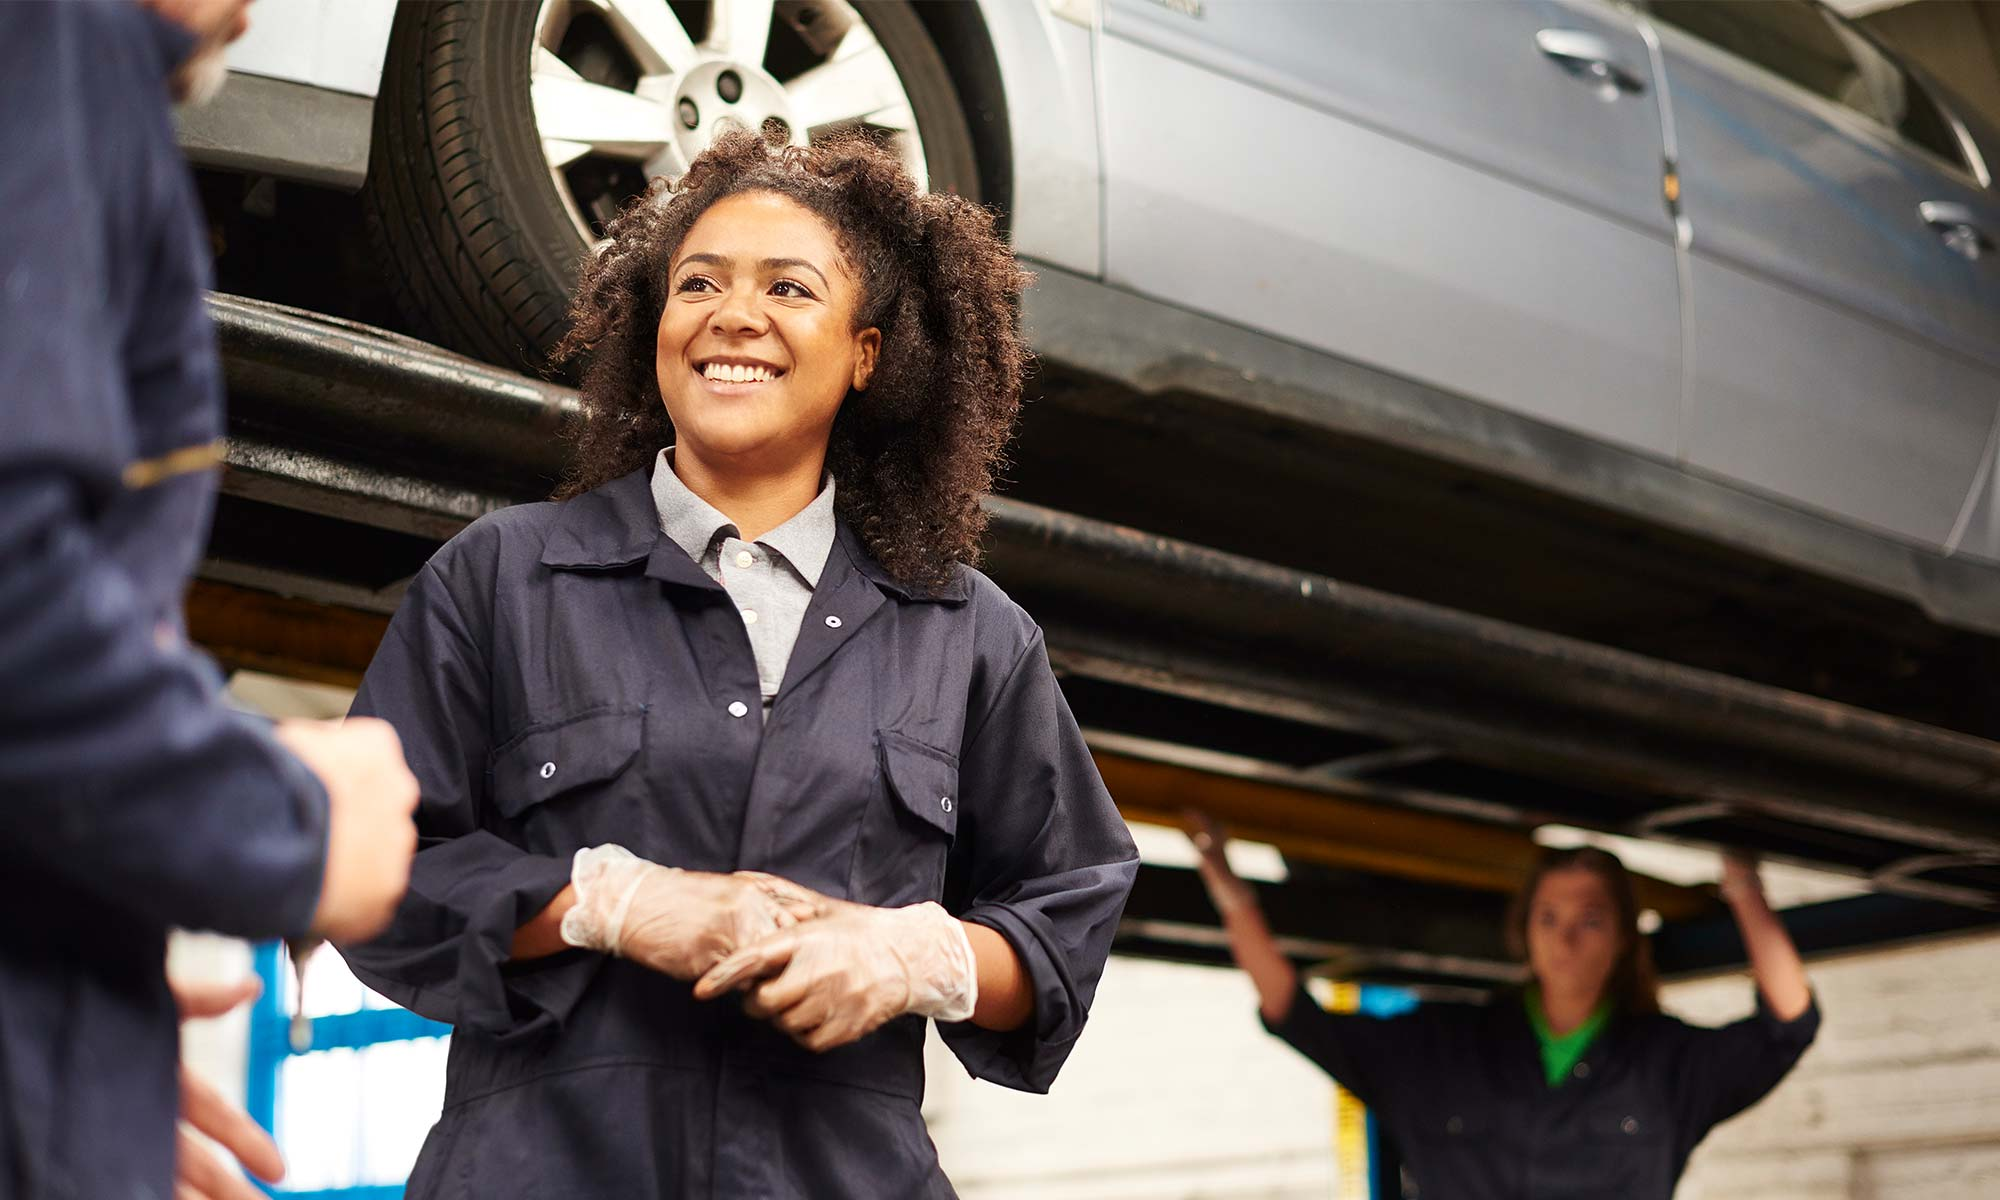 A female mechanic speaks with a customer while her colleague work on a vehicle behind her.s